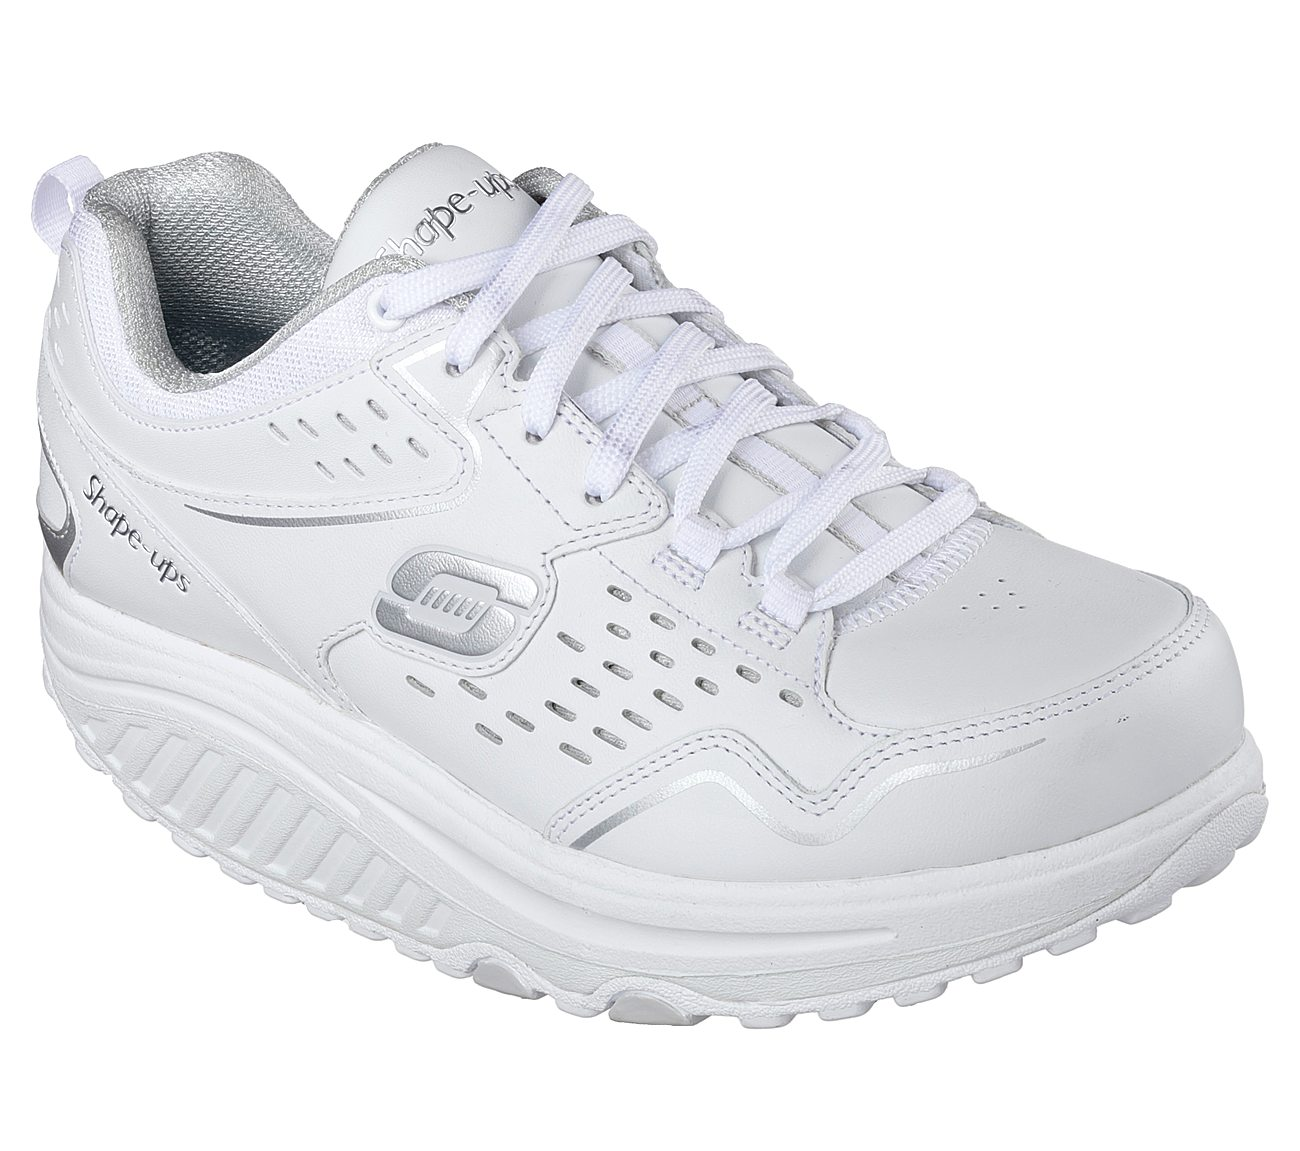 skechers shape up shoes for men